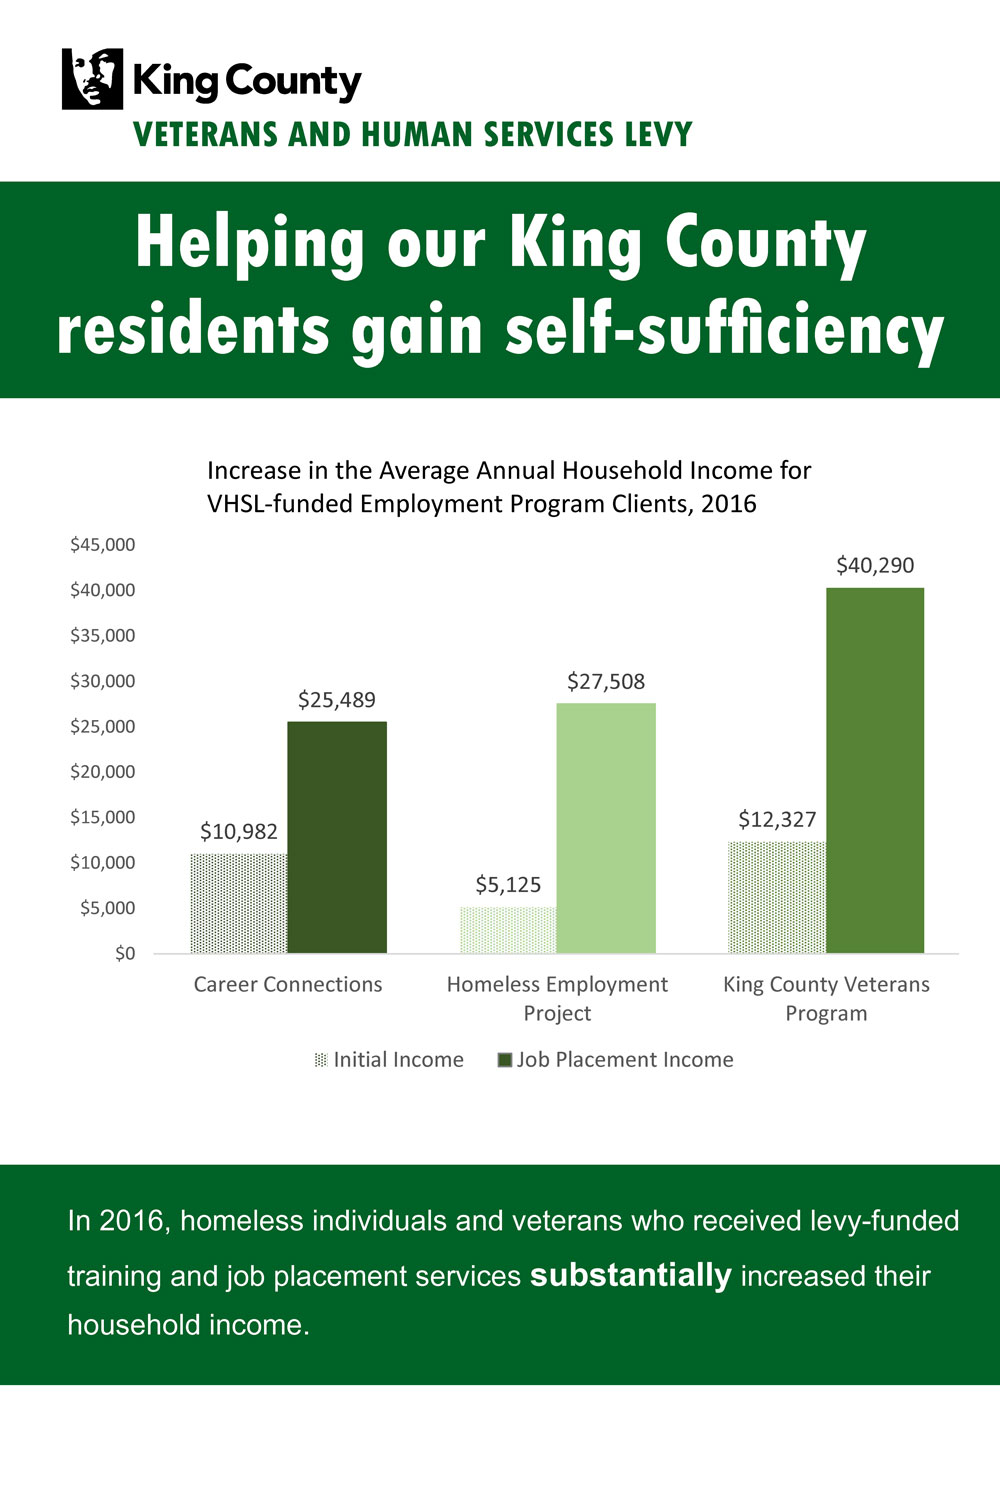 The Veterans and Human Services levy has helped residents gain self sufficiency.